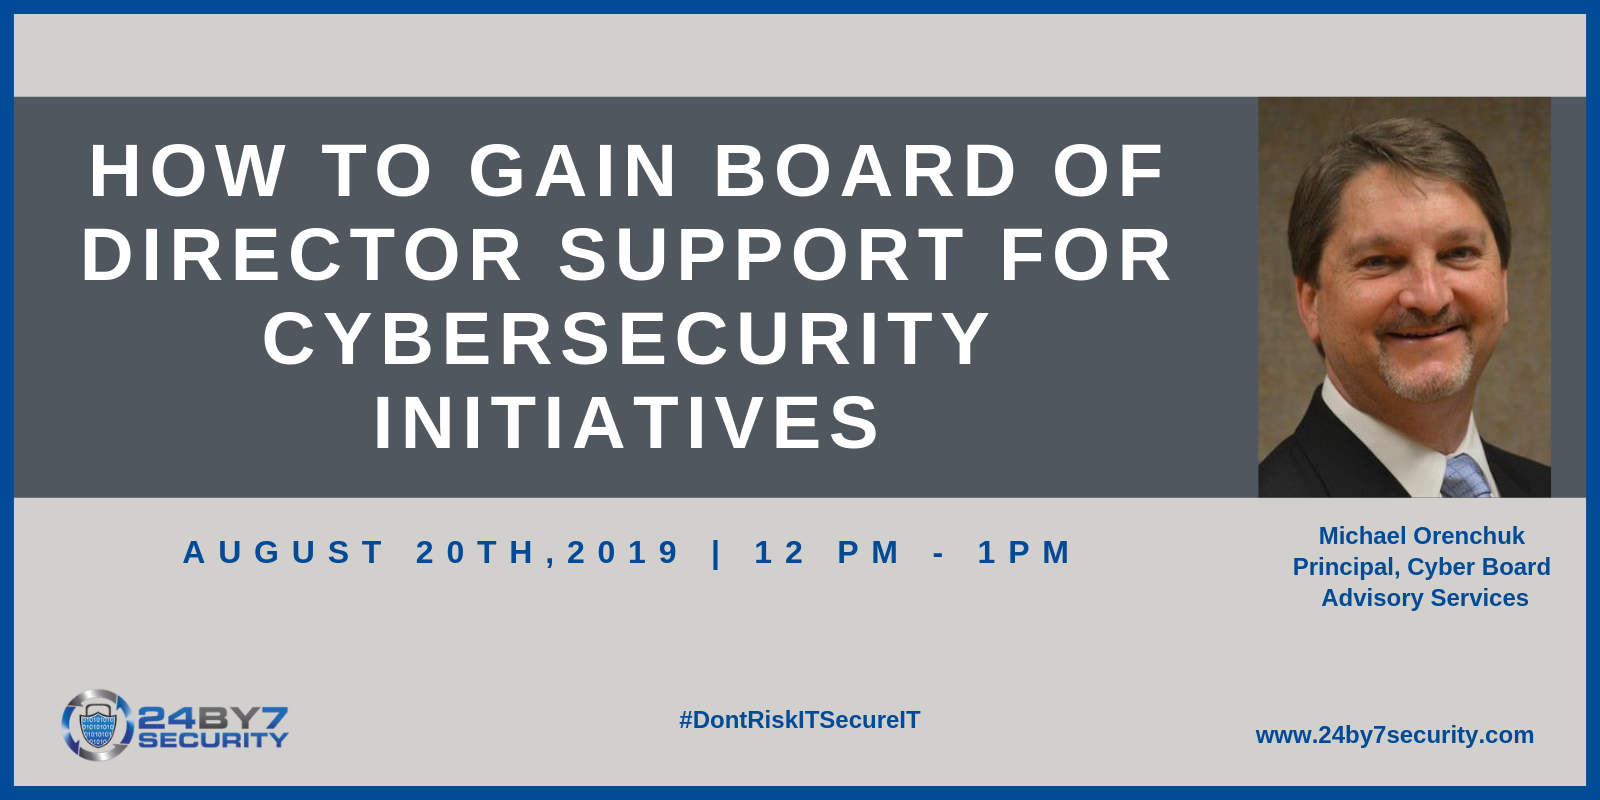 How to Gain Board of Director Support for Cybersecurity Initiatives FINAL